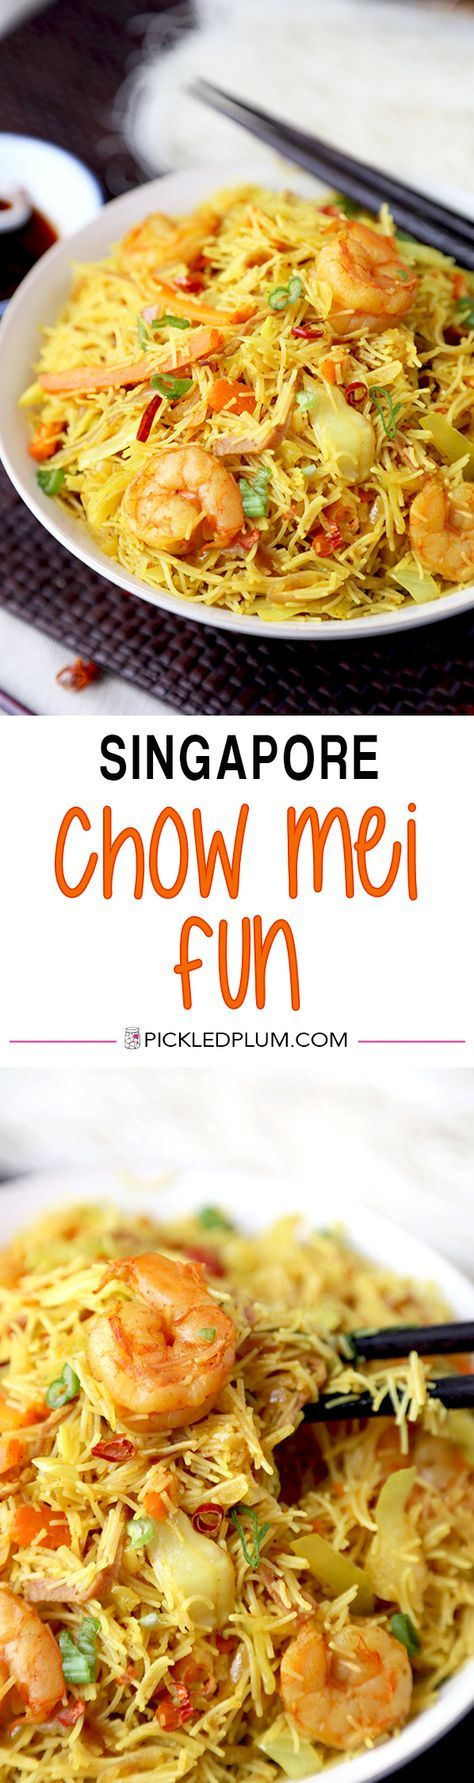 Singapore Chow Mei Fun - This is a simplified and better than takeout Singapore chow mei fun recipe your whole family will love. Ready in 20 minutes from start to finish! Easy, Noodles, Chinese Food | pickledplum.com